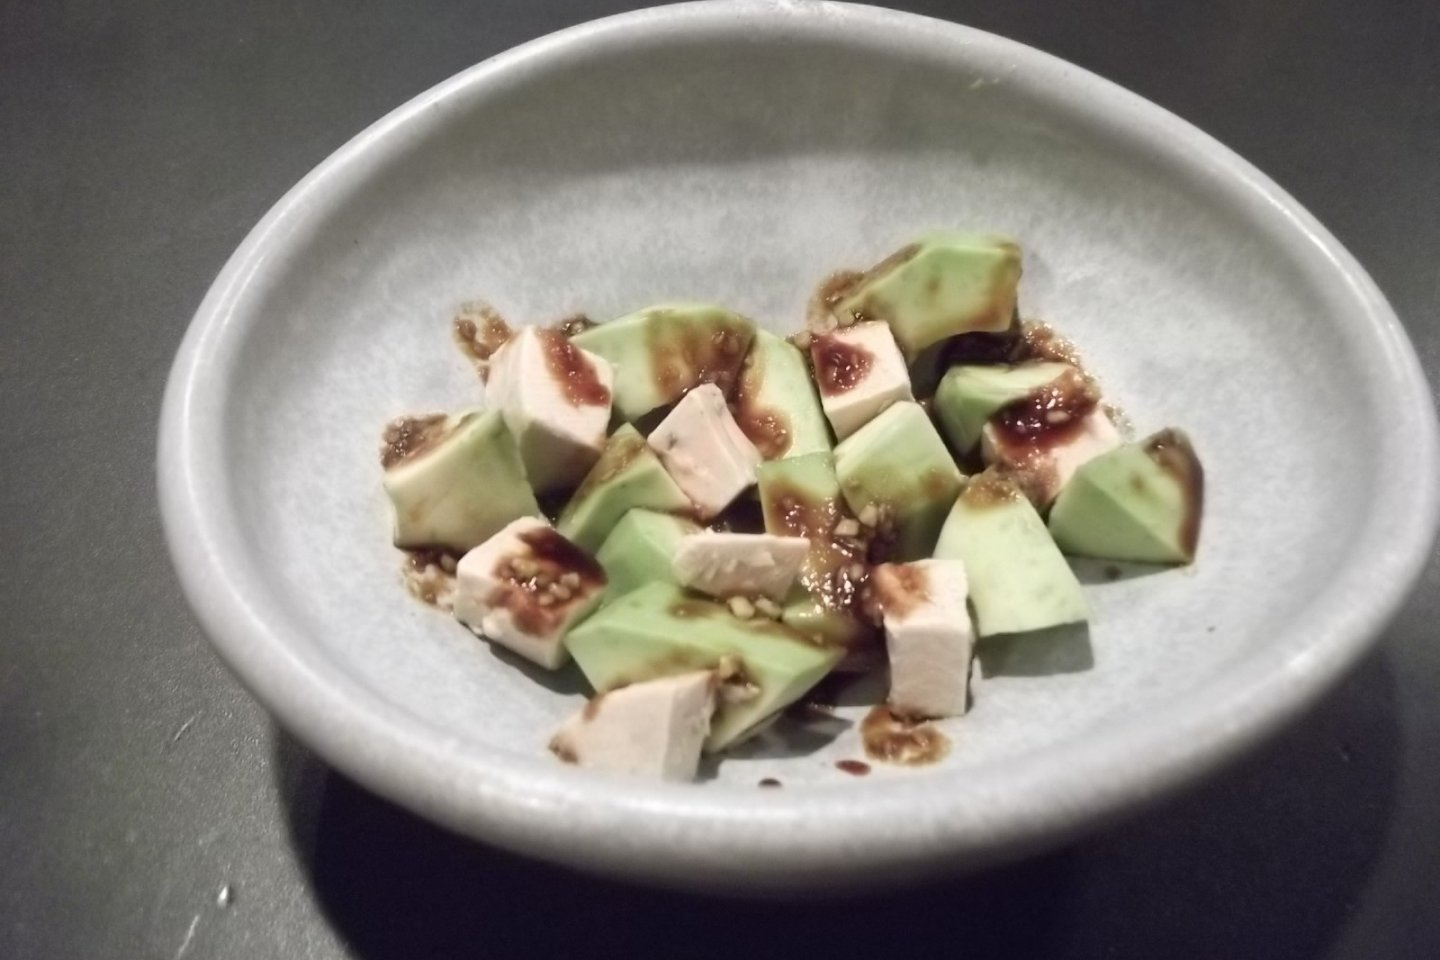 My side dish, avocado and foie gras with soy sauce and wasabi